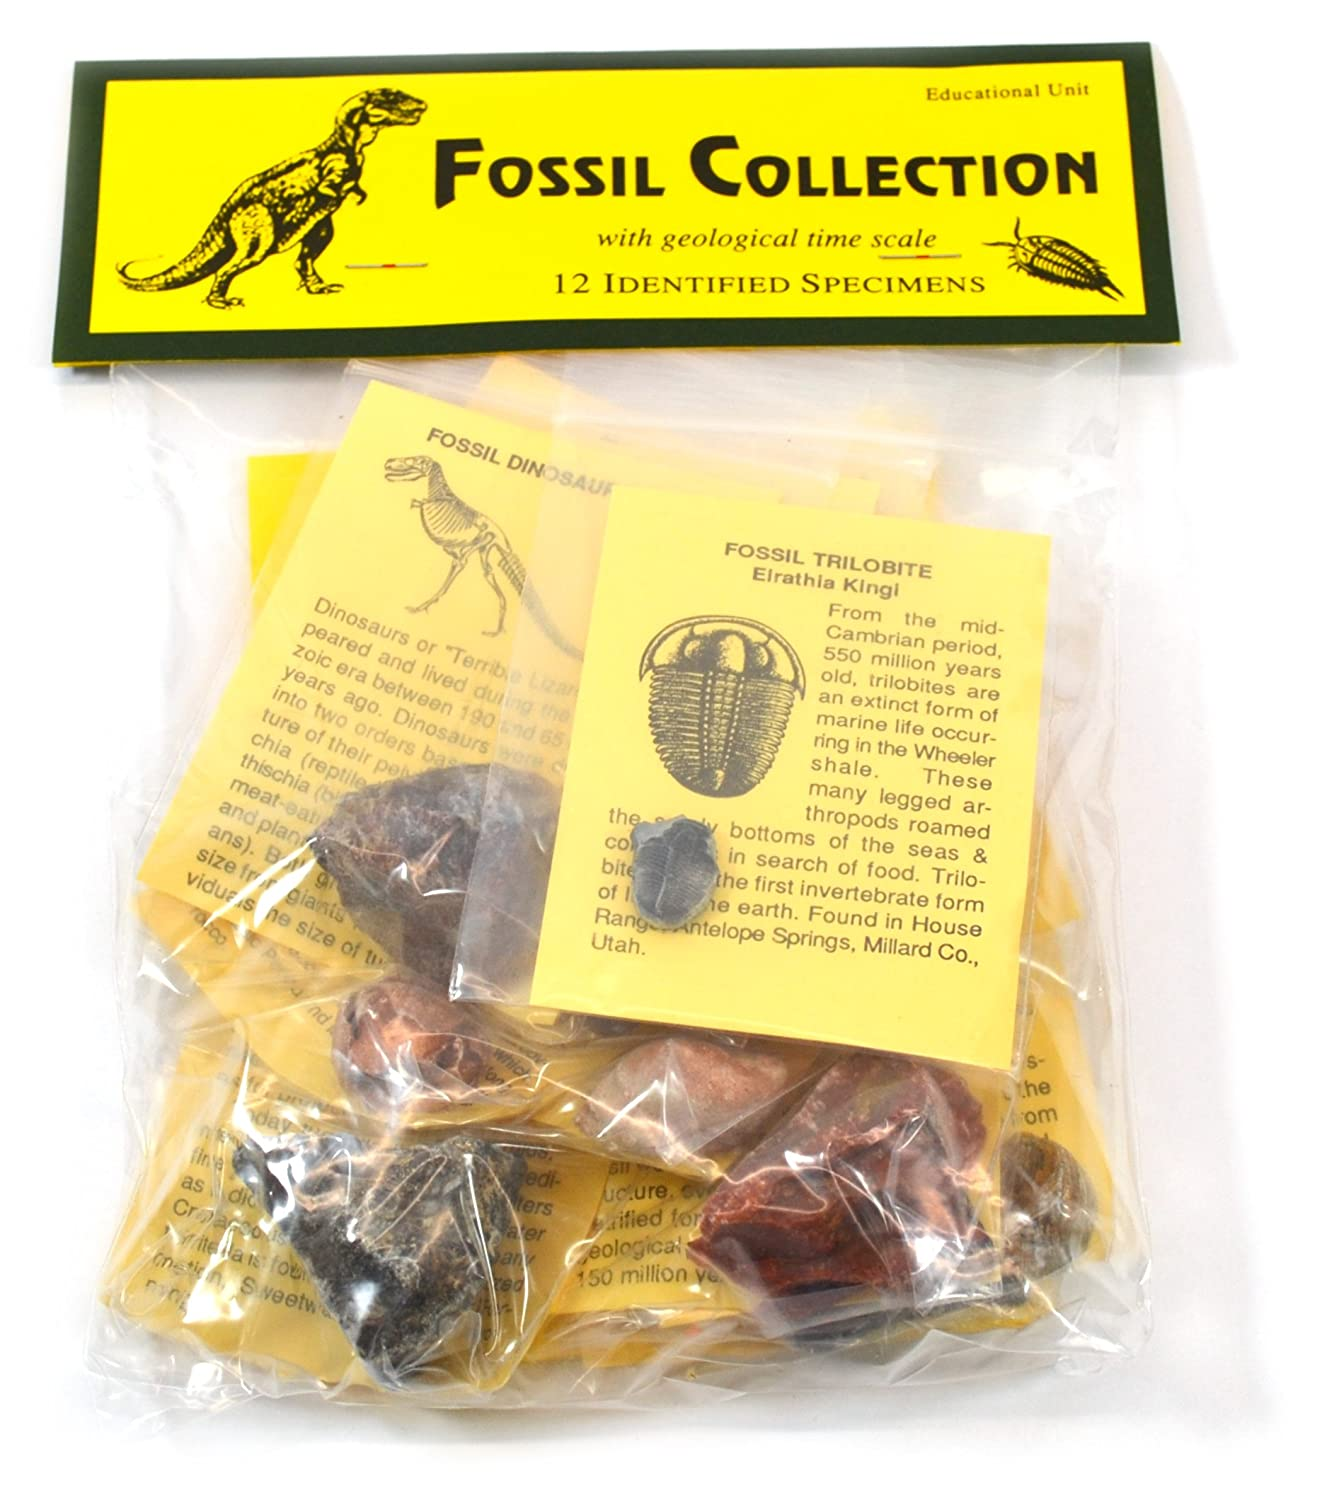 Information Cards and Geological Timescale Deluxe Authentic Fossil Collection with 12 Identified Specimens